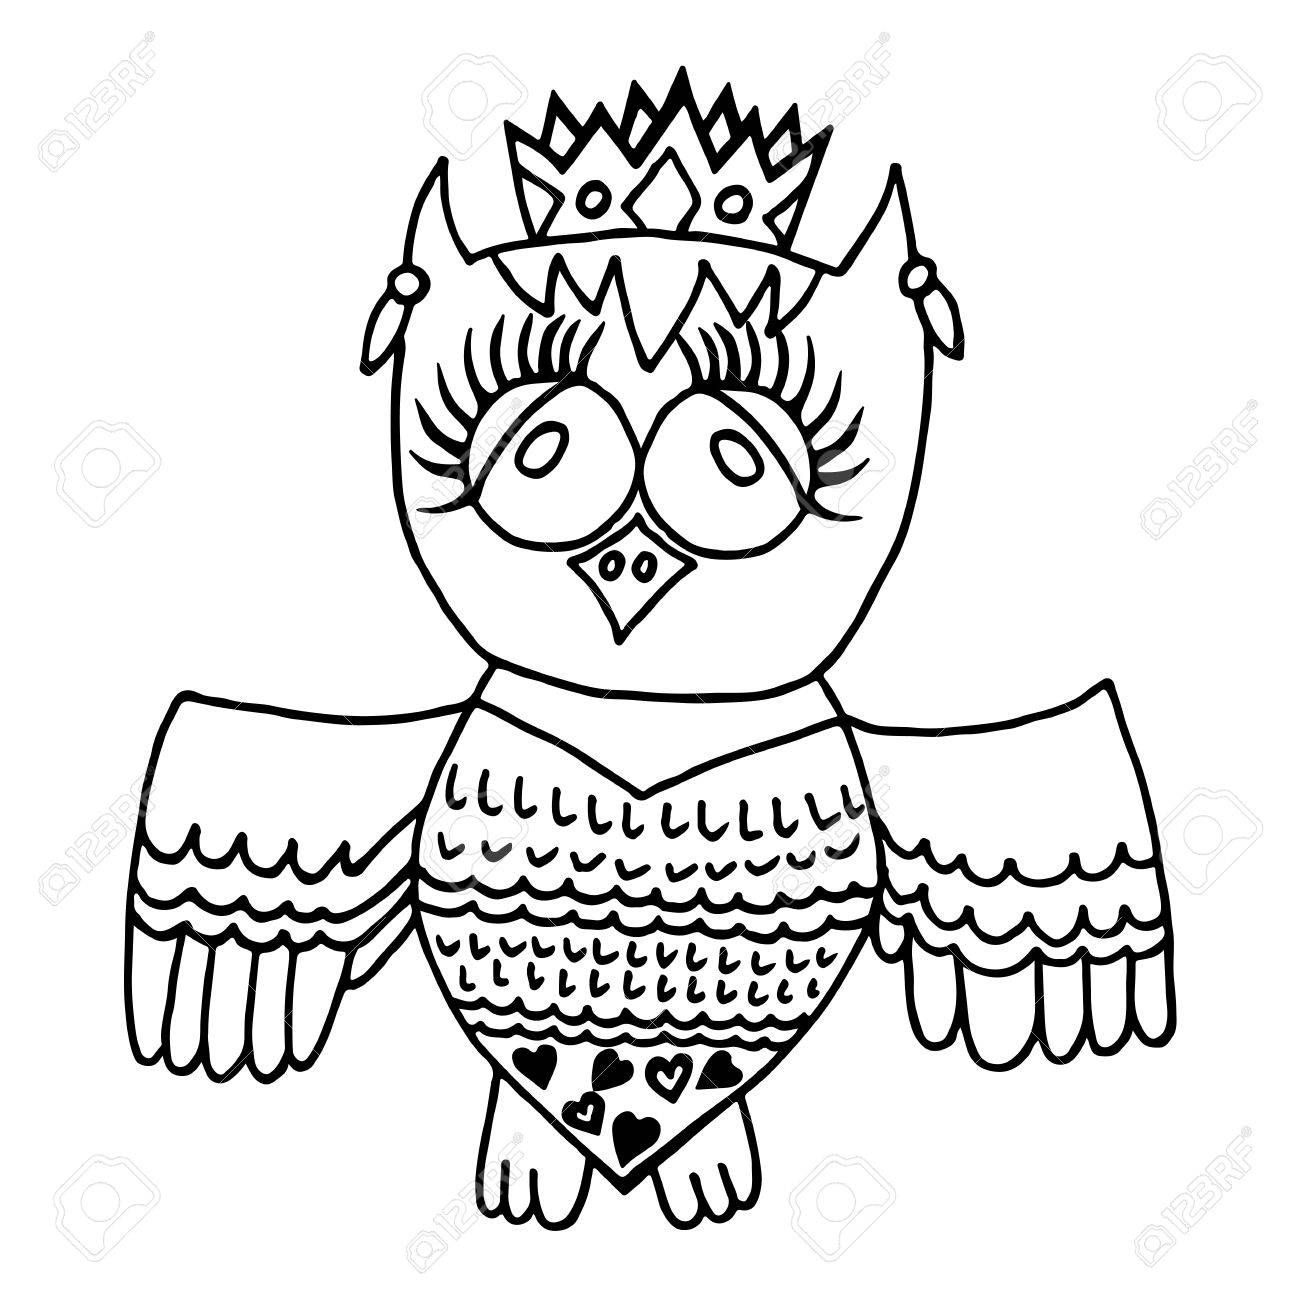 Cute Owl In Crone Picture For Adult Coloring Book Page Design Child Magazine